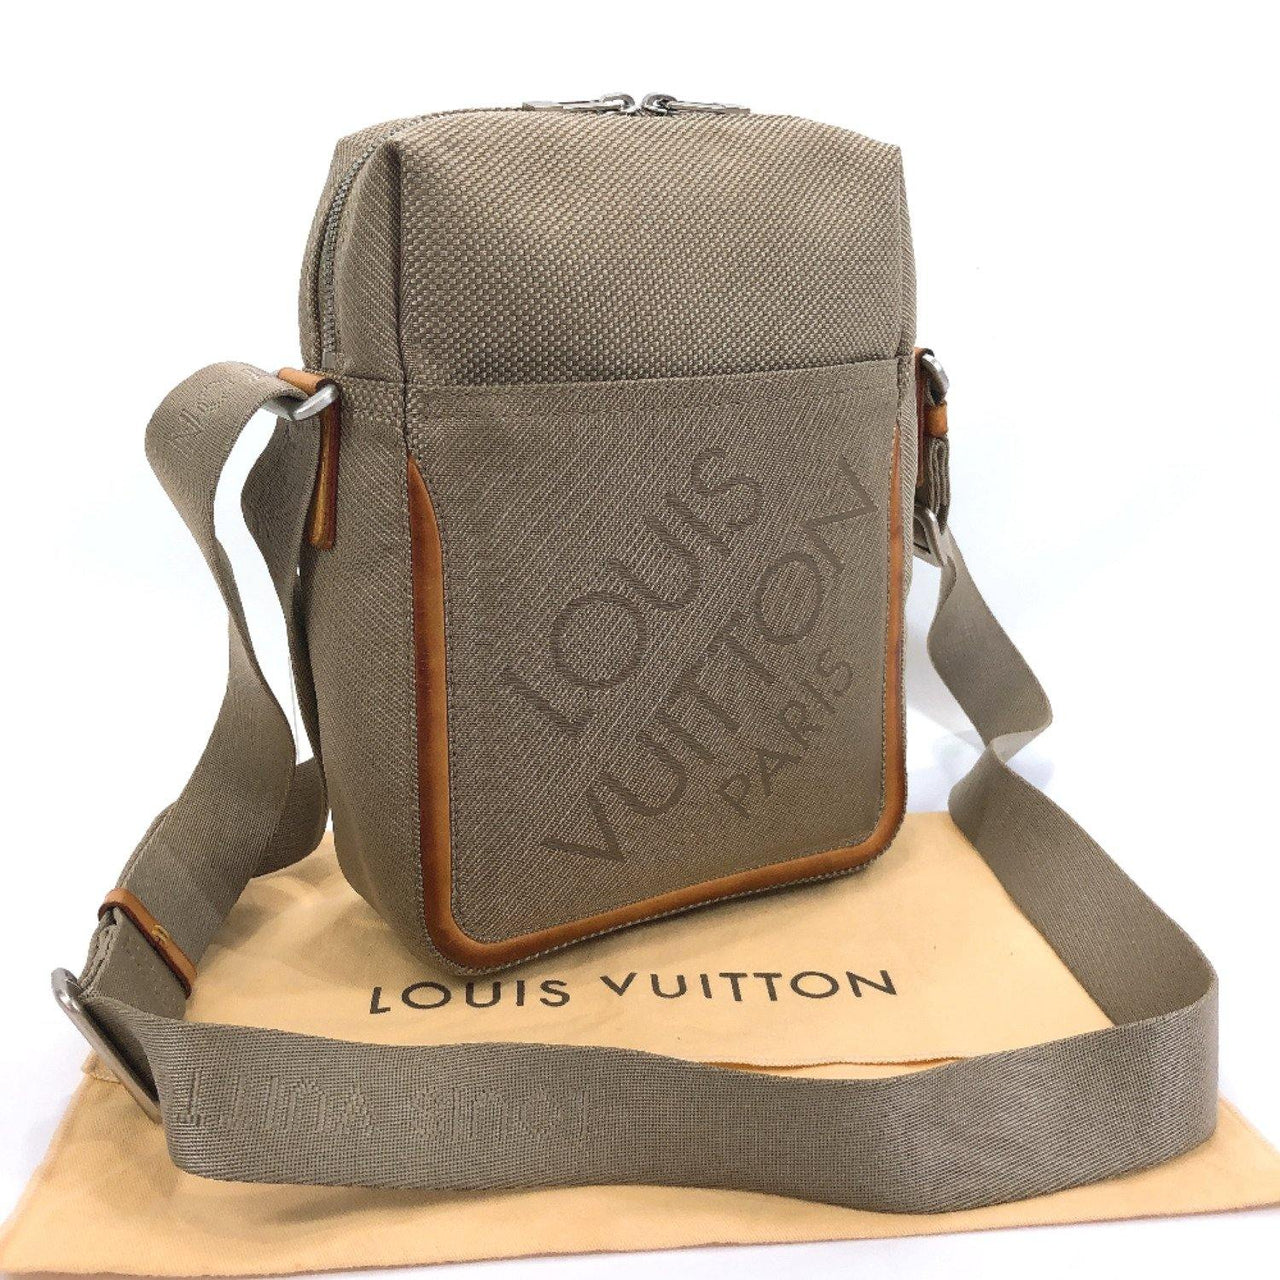 LOUIS VUITTON Shoulder Bag M93041 Sitadan Damier Jean Canvas khaki mens Used - JP-BRANDS.com